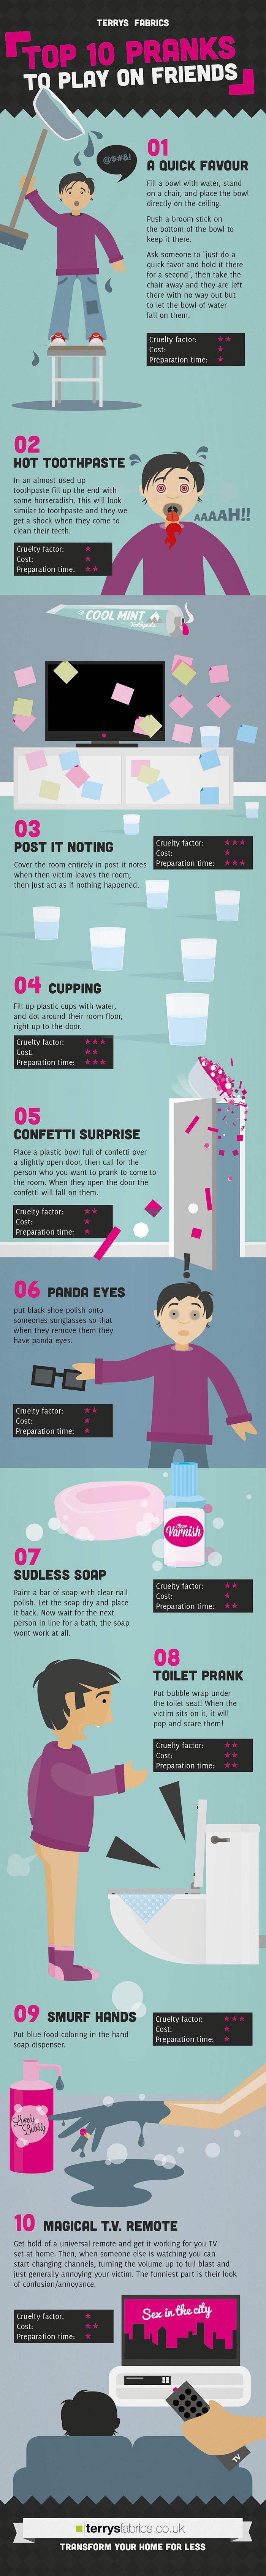 Playing Pranks On Your Friend #Infographic